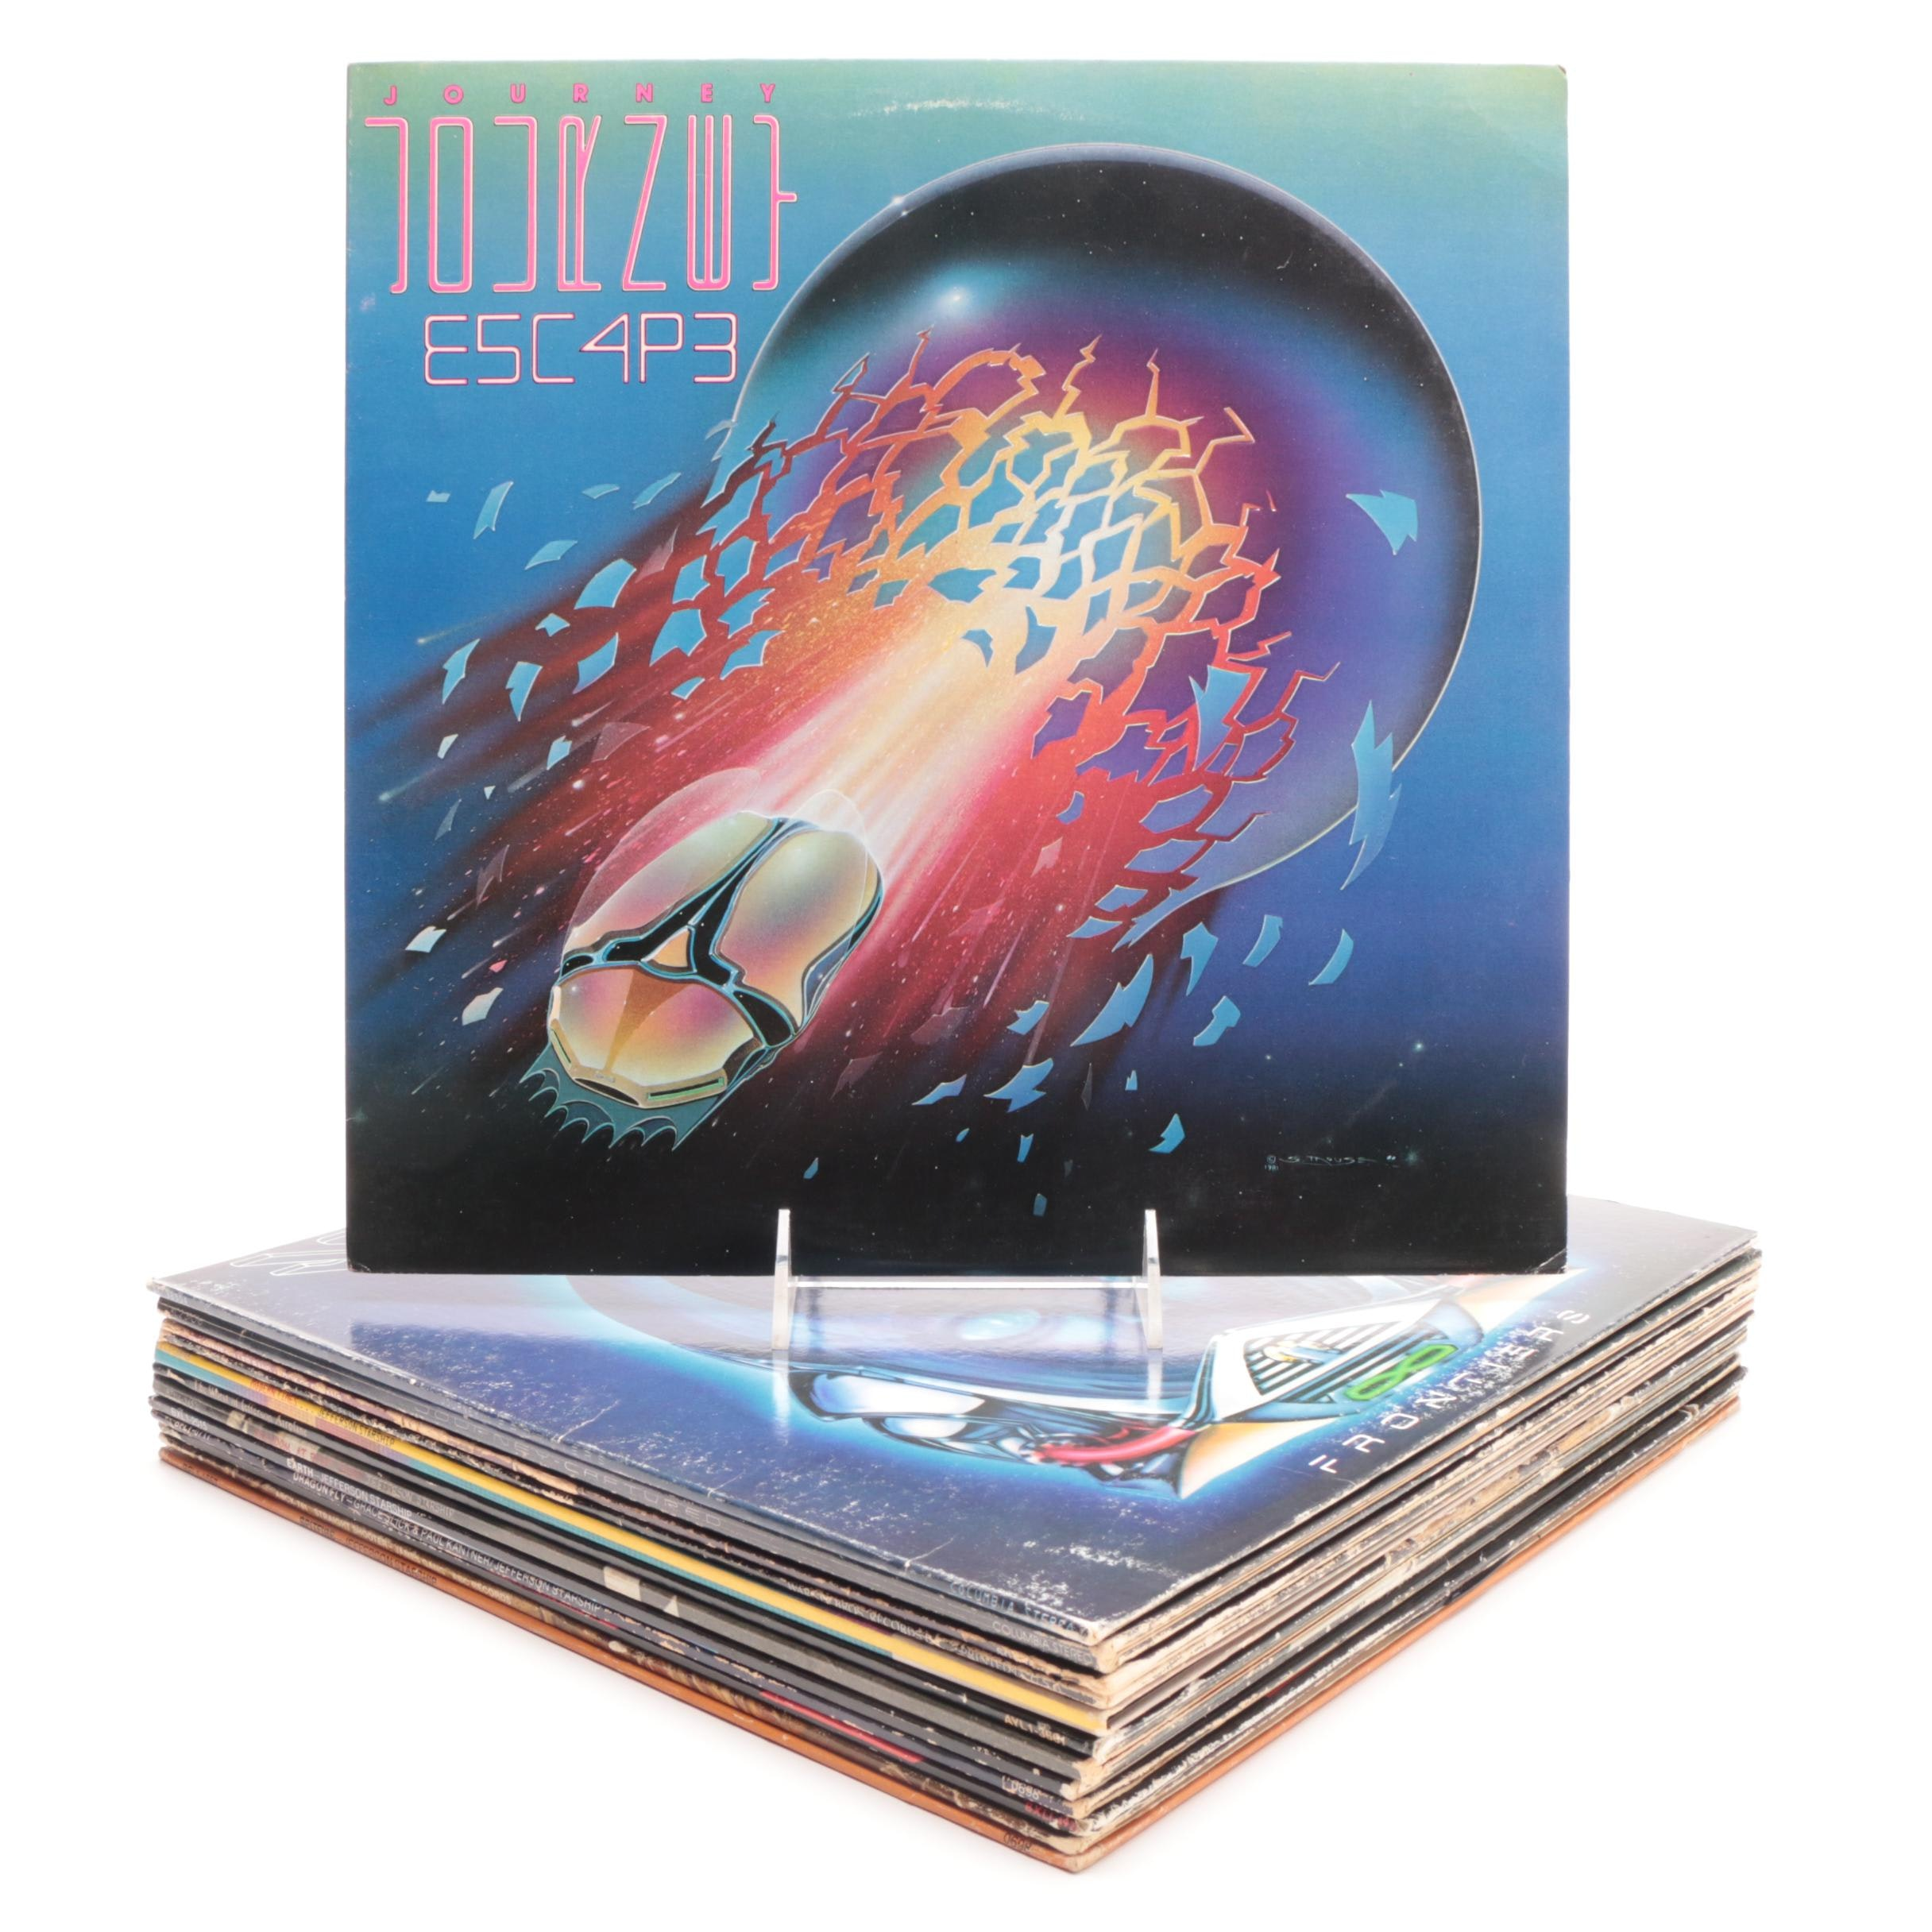 Classic Rock LP Records including Journey, Fleetwood Mac and Jefferson Starship